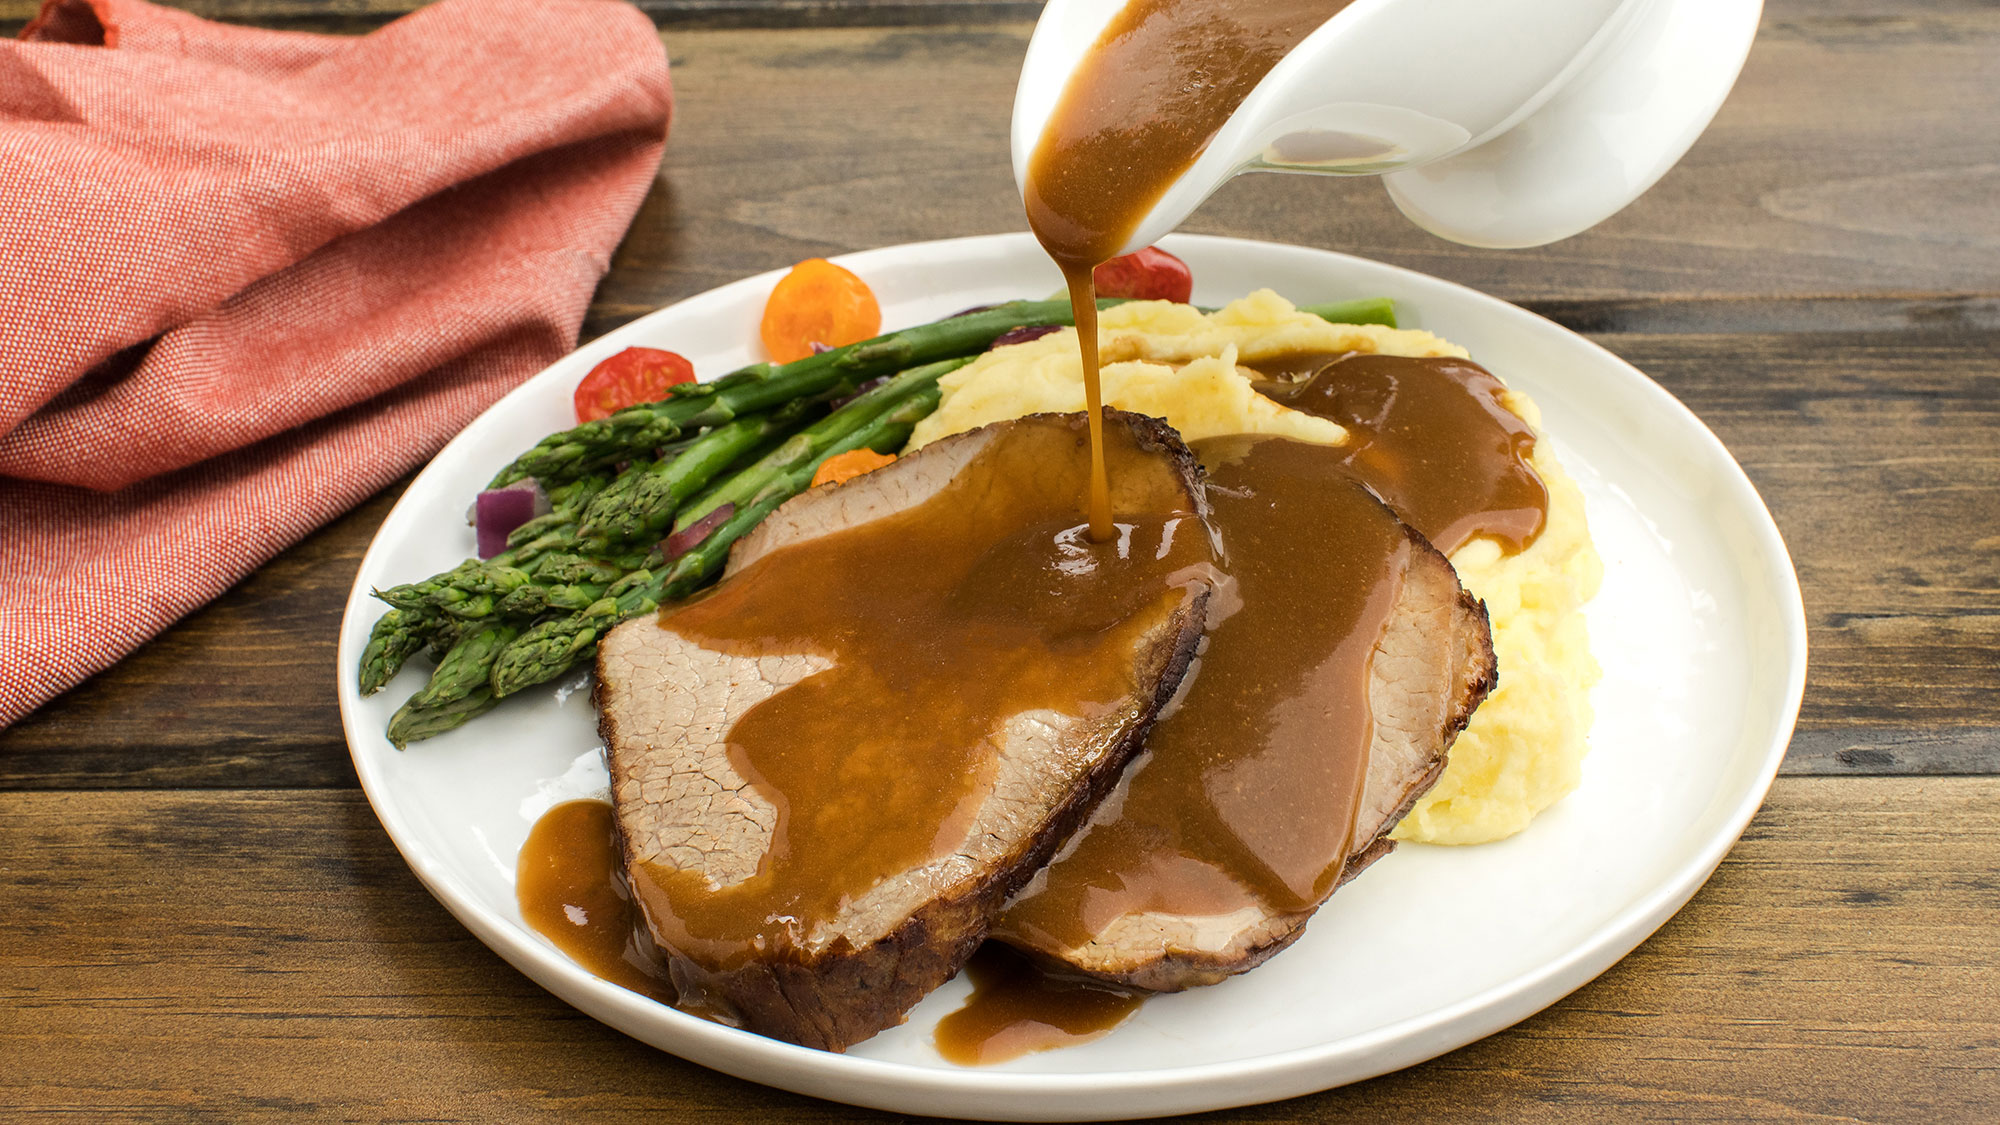 New-Brown-Gravy-2000x1125.jpg